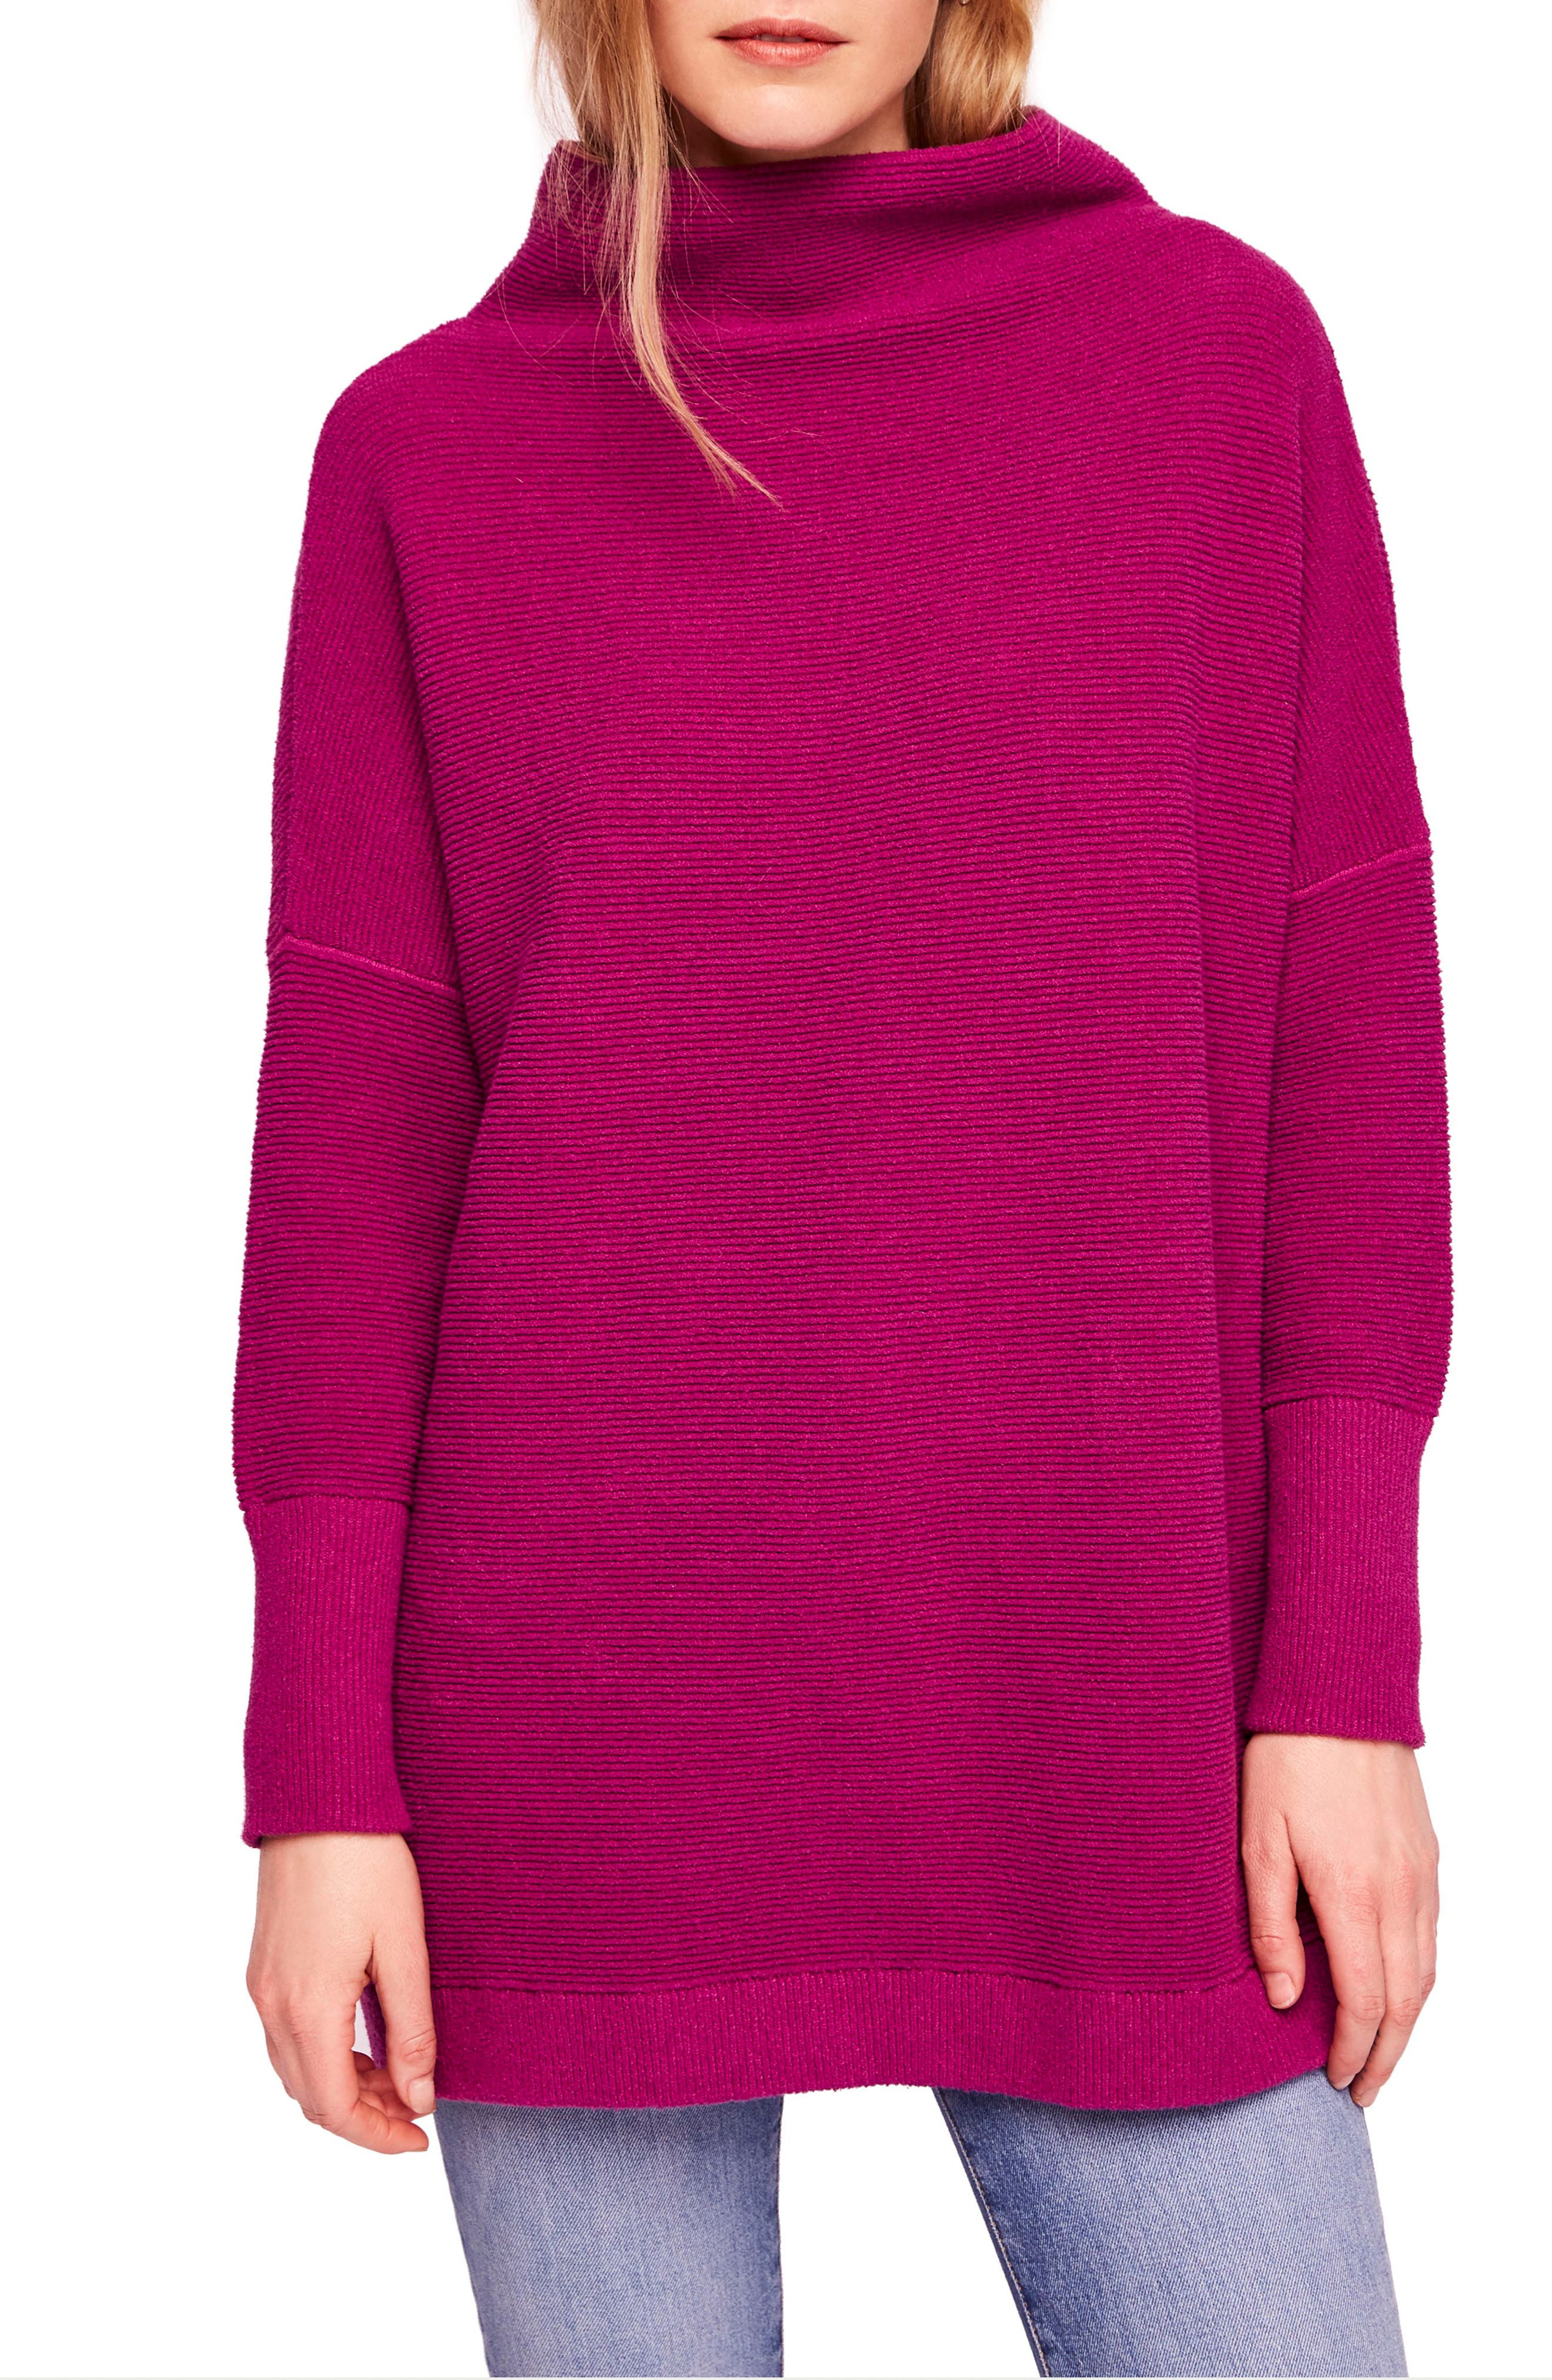 Ottoman Slouchy Tunic,                             Main thumbnail 1, color,                             MULBERRY